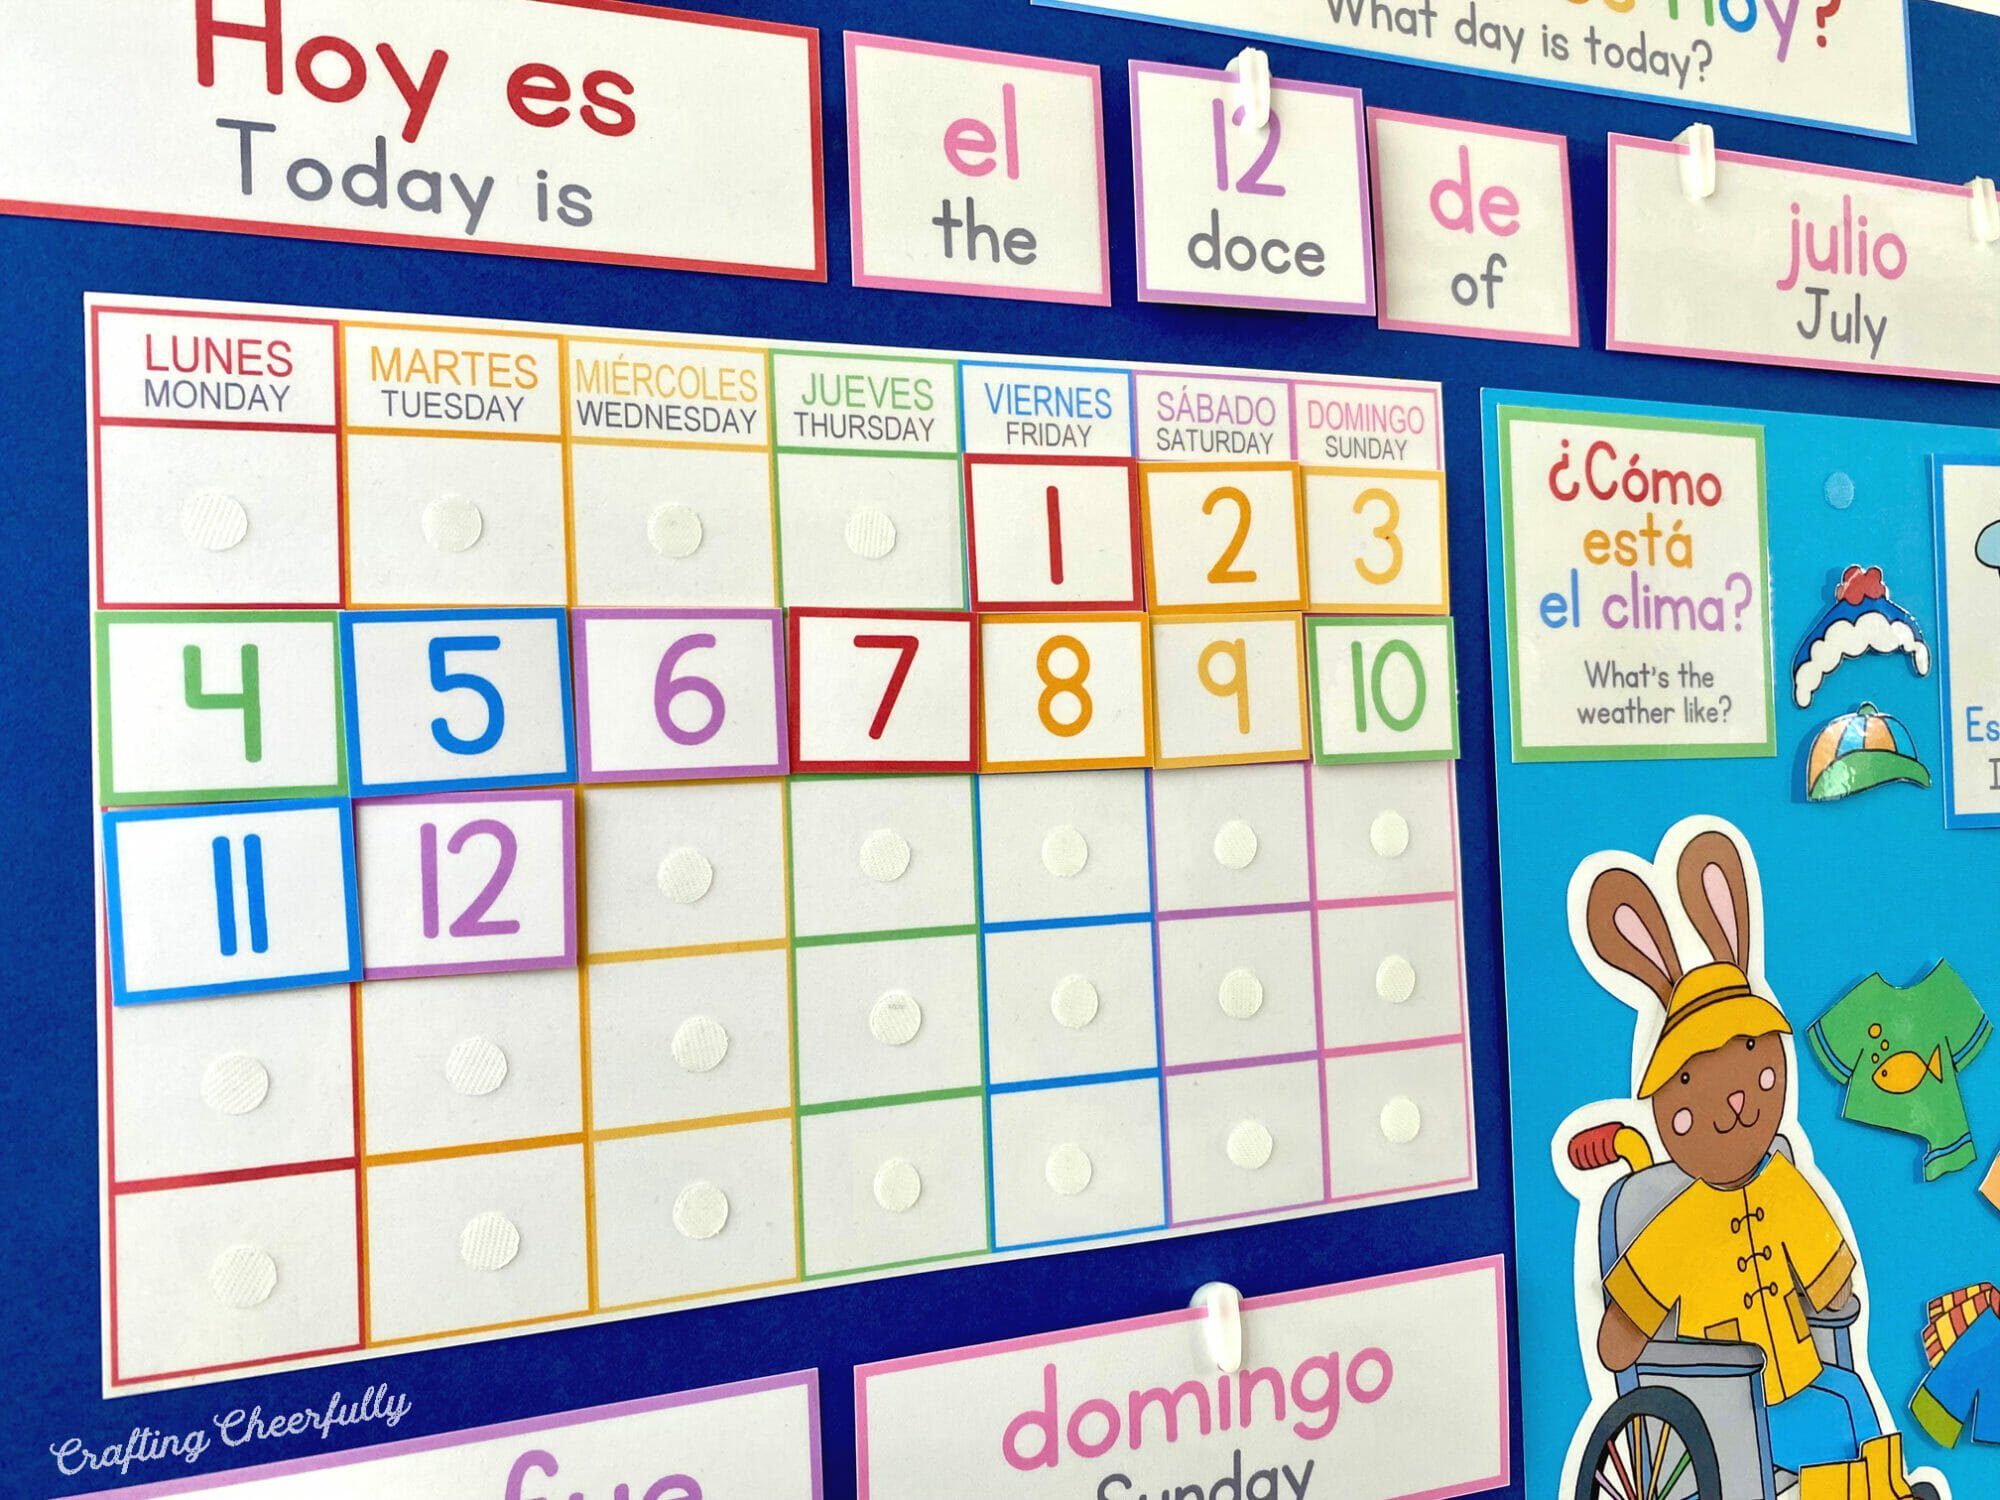 Calendar on Morning board in Spanish and English